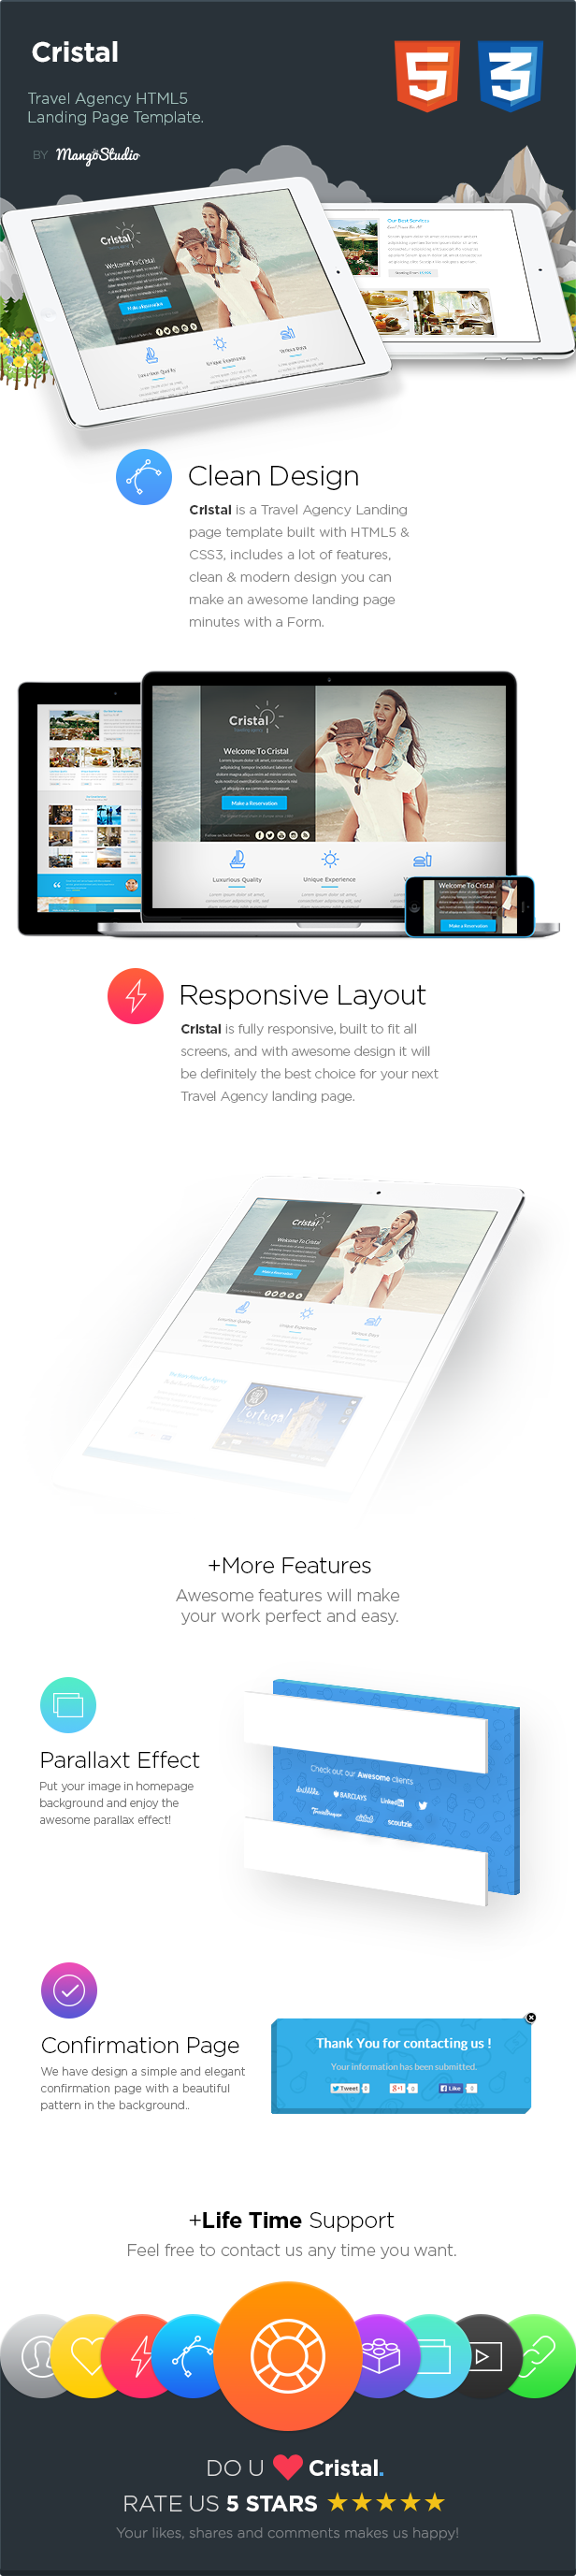 Cristal - Travel Agency HTML Landing Page Template